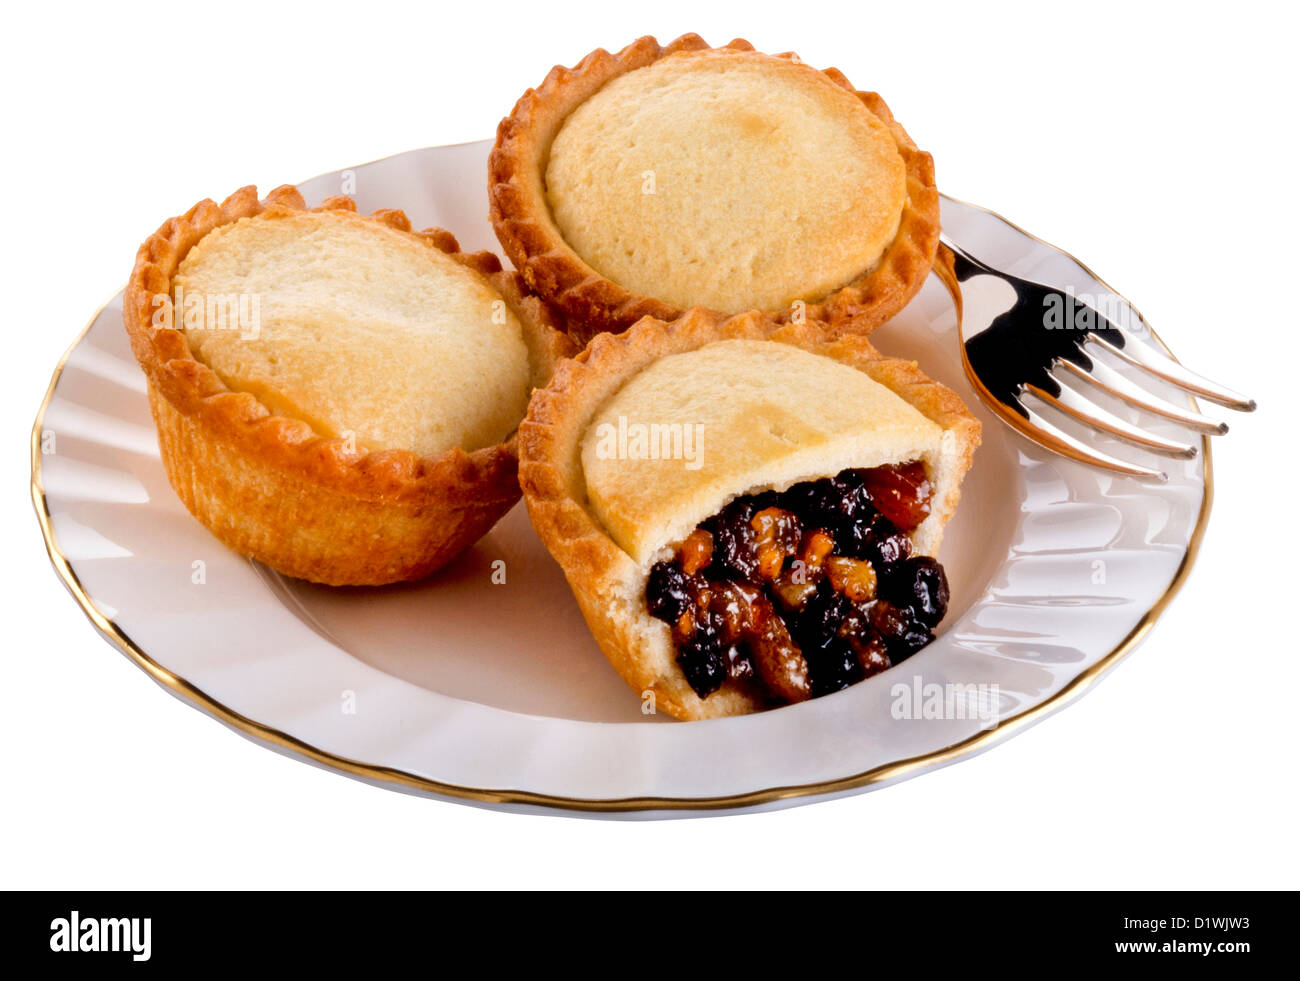 CUT OUT OF CHRISTMAS MINCE PIES - Stock Image